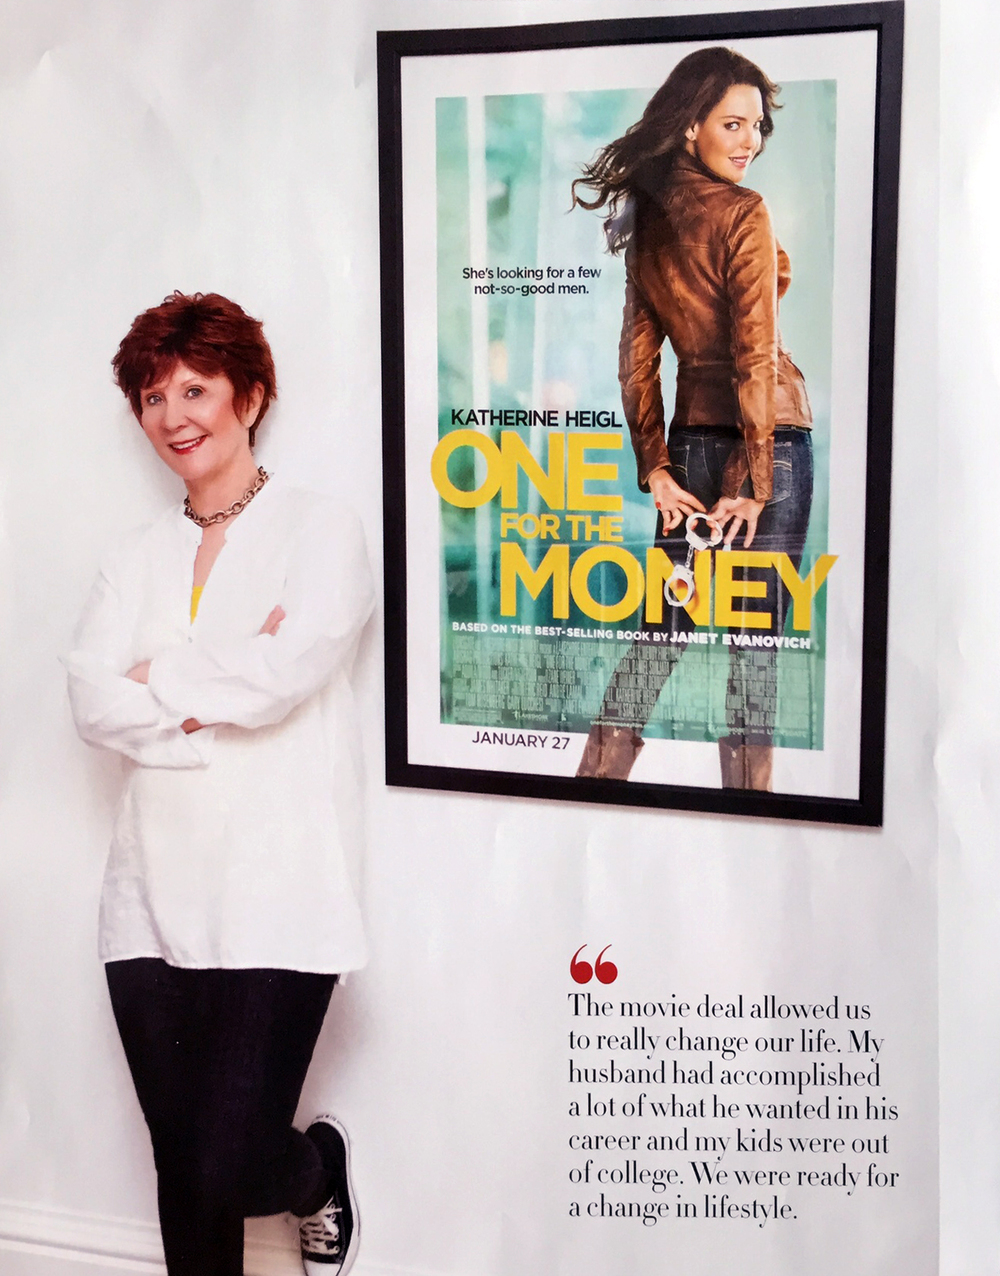 NAPLES_ILLUSTRATED_DECEMBER_ISSUE_2014_JANETT_EVANOVICH_PHOTOGRAPHED_BY_VANESSA_ROGERS